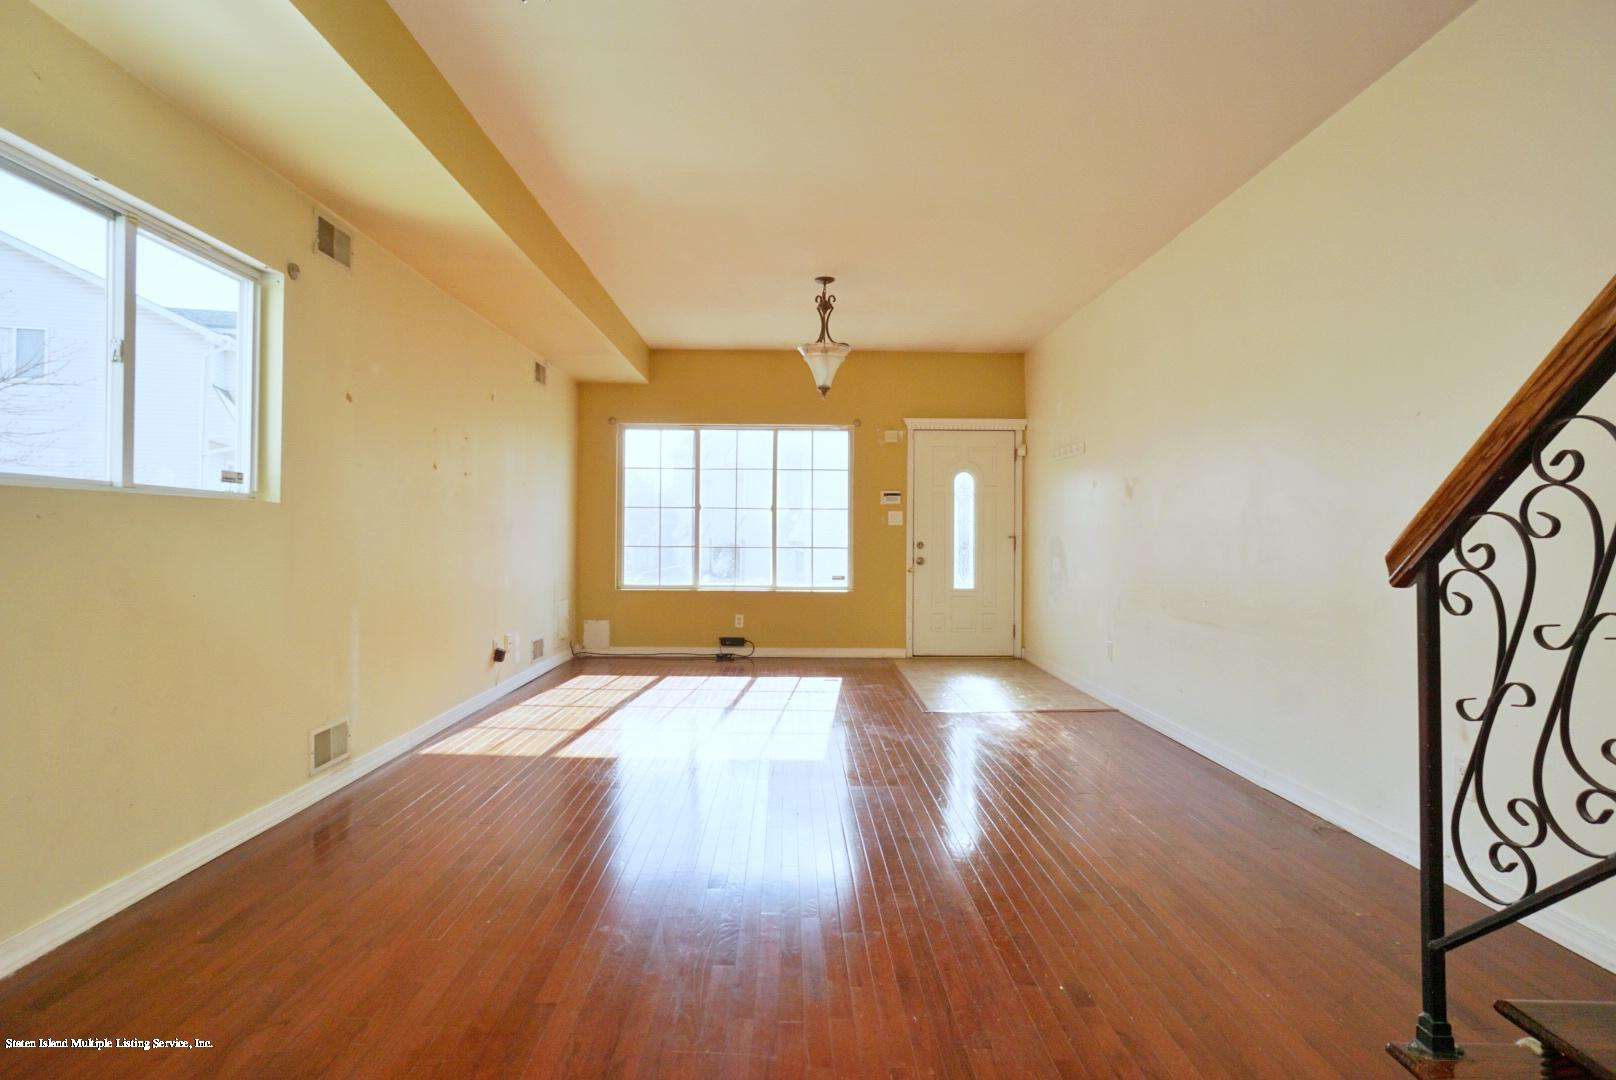 Two Family - Attached 71 Woodcutter Lane  Staten Island, NY 10306, MLS-1136417-5